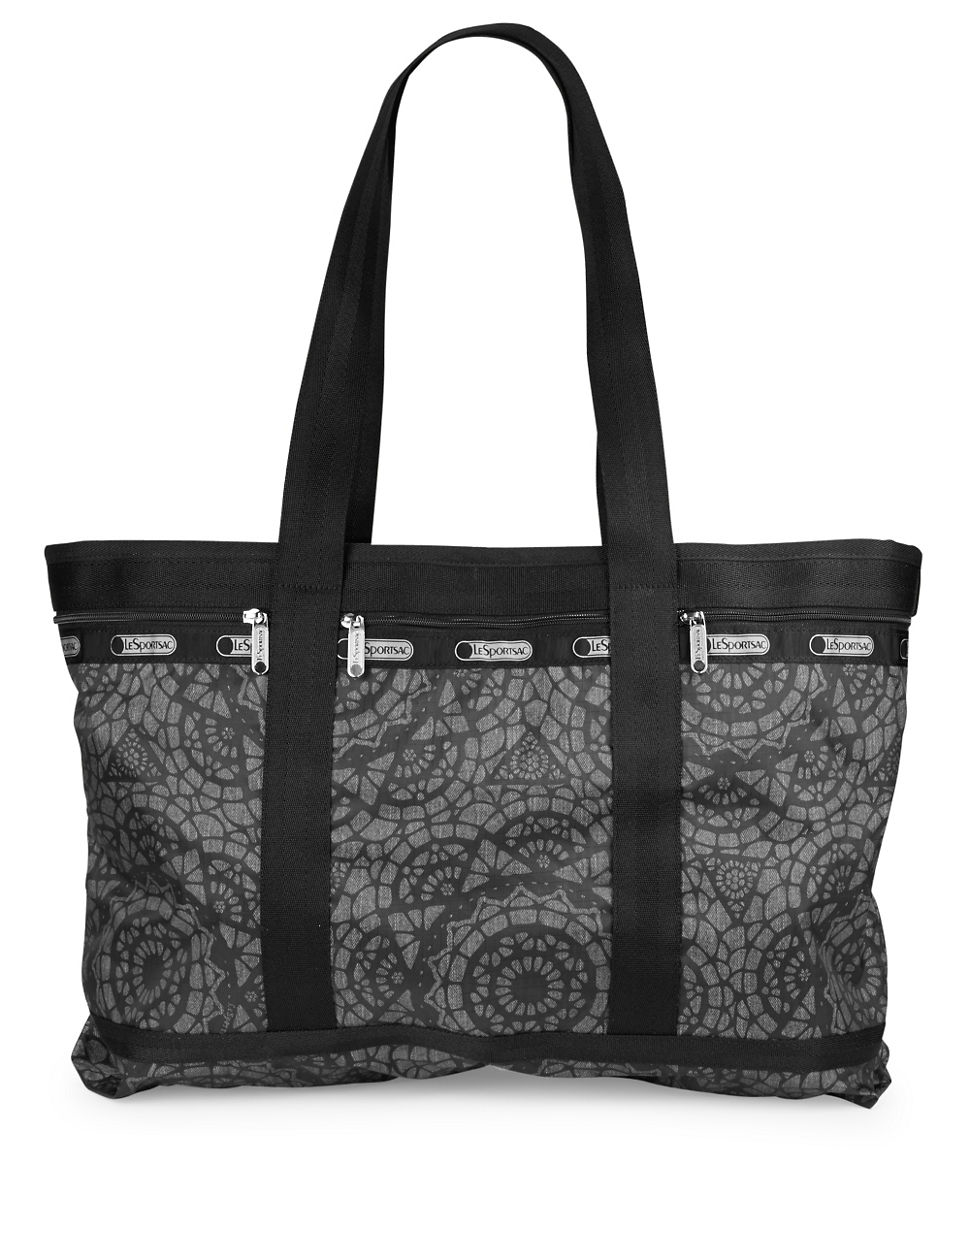 LeSportsac Large Printed Travel Tote Bag in Gray - Lyst